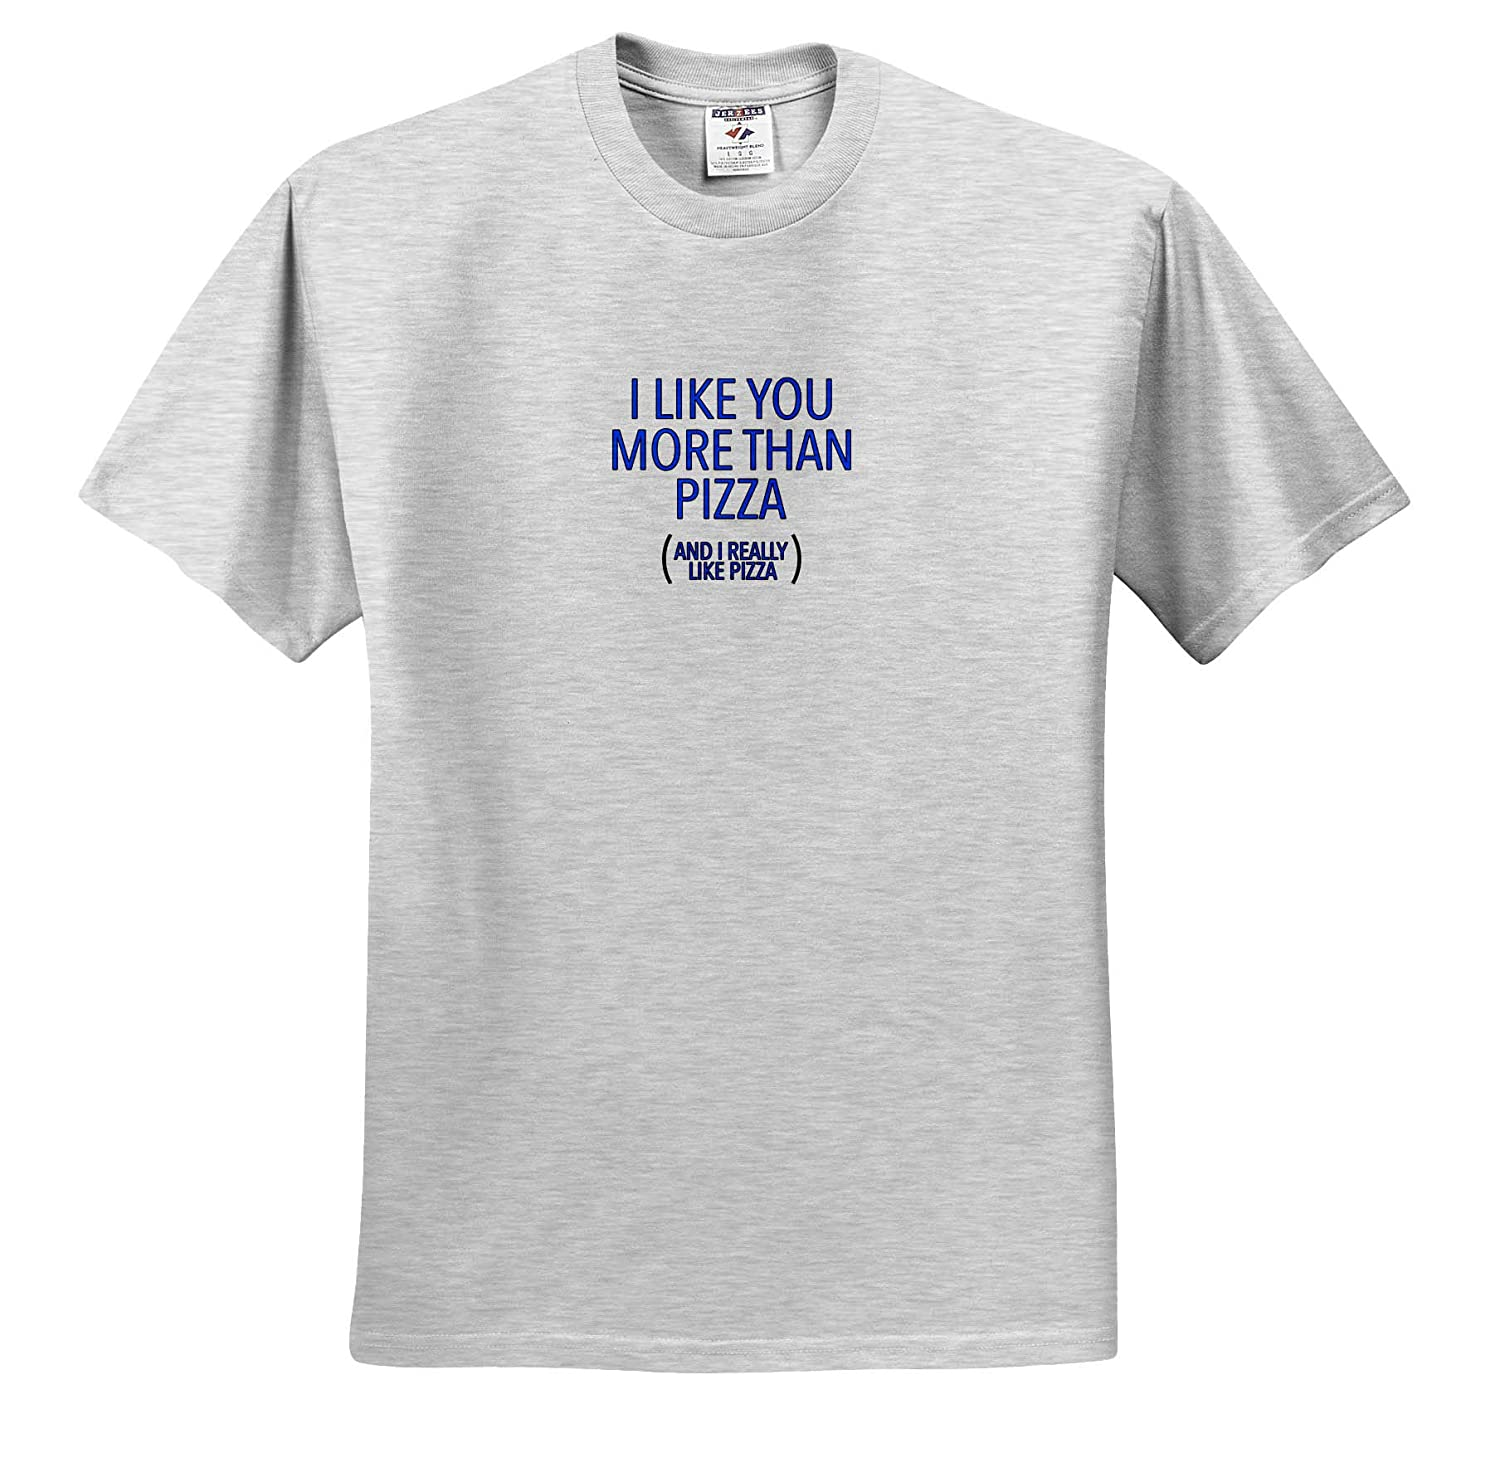 3dRose EvaDane I Like You More Than Pizza Blue Funny Sayings T-Shirts